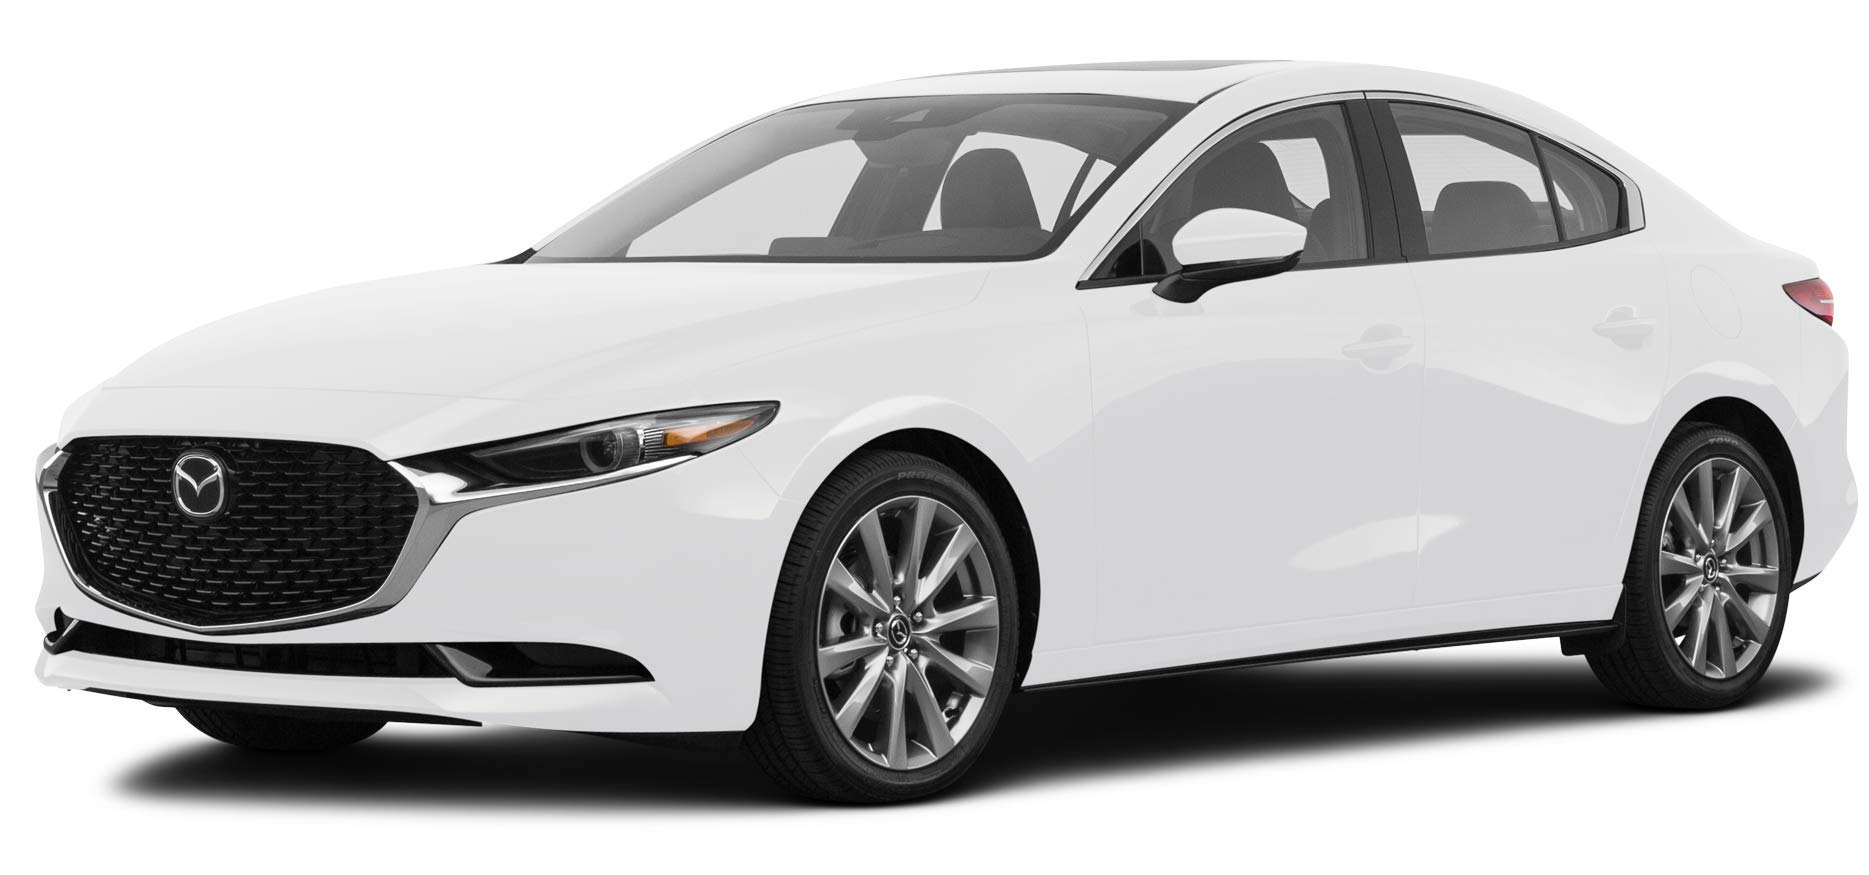 Amazon Com 2019 Mazda 3 Reviews Images And Specs Vehicles